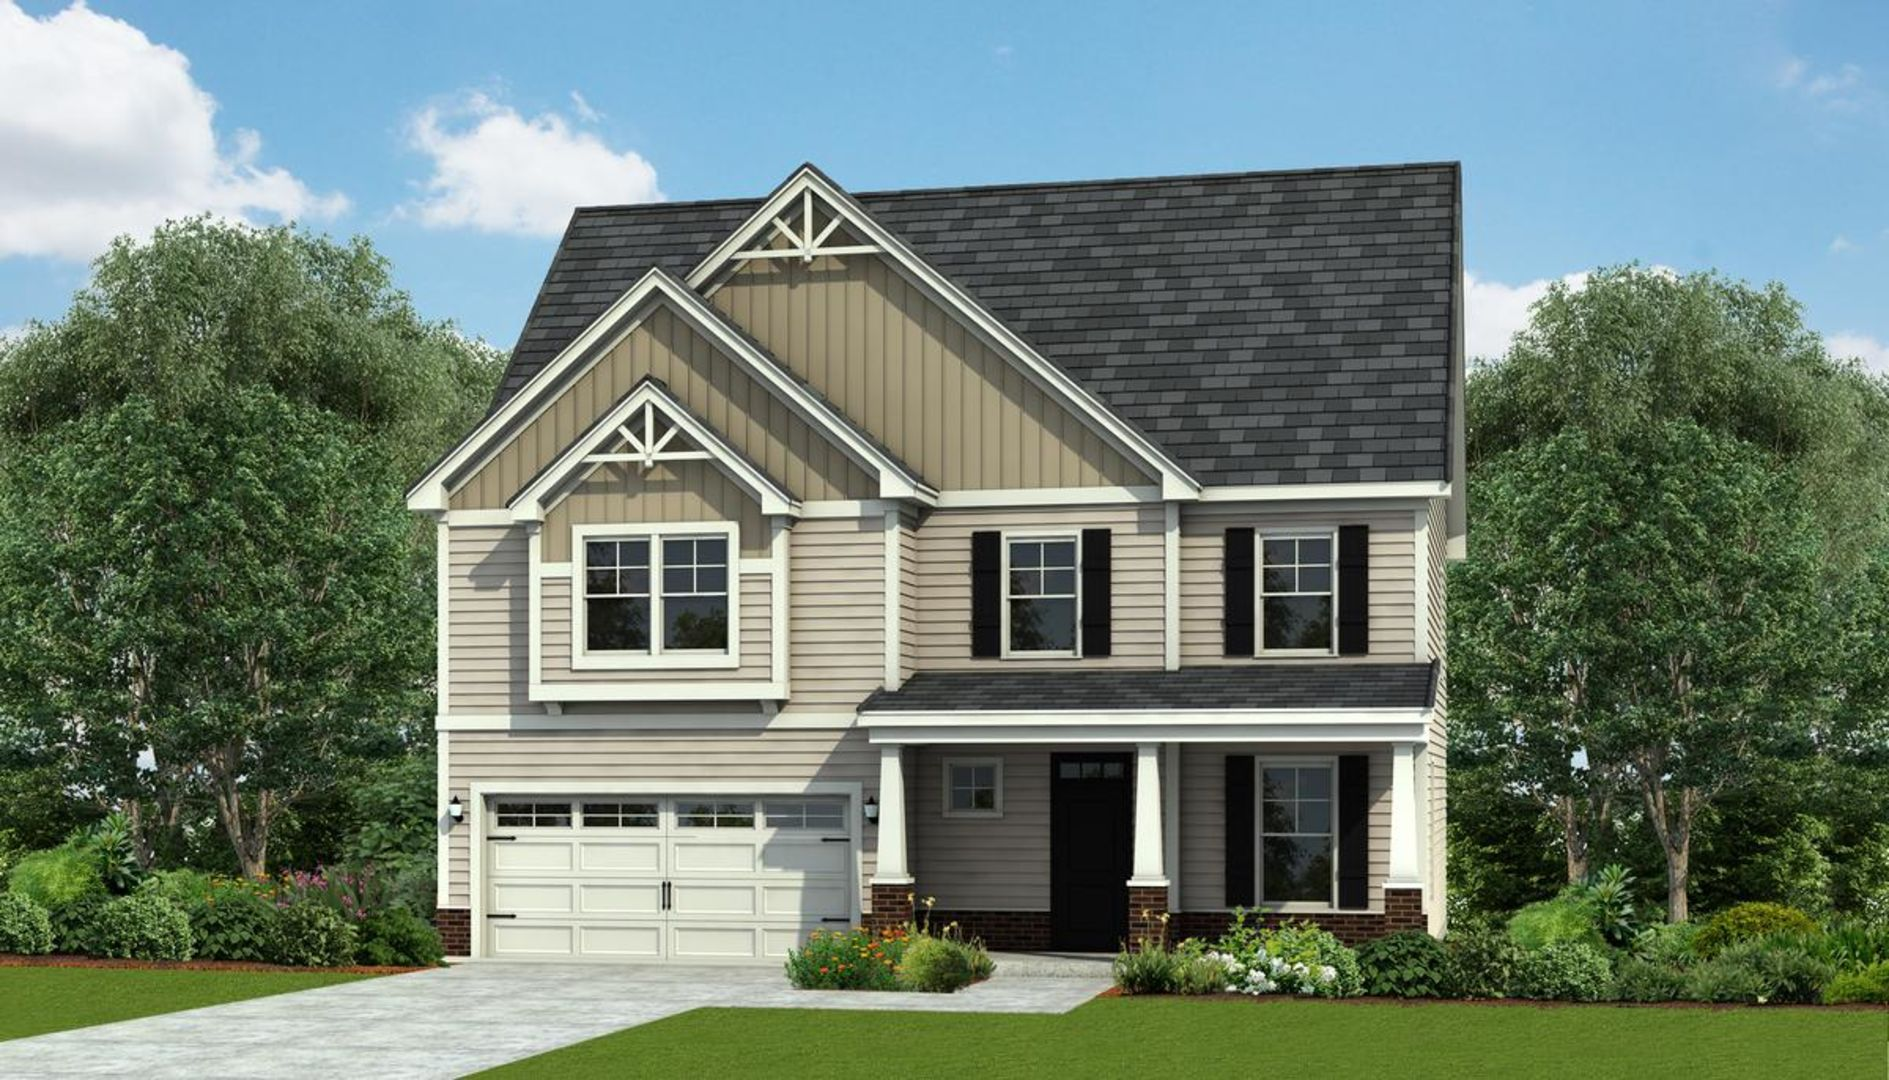 Hh Homes Massey Preserve South Spruce 1325481 Raleigh Nc New Home For Sale Homegain